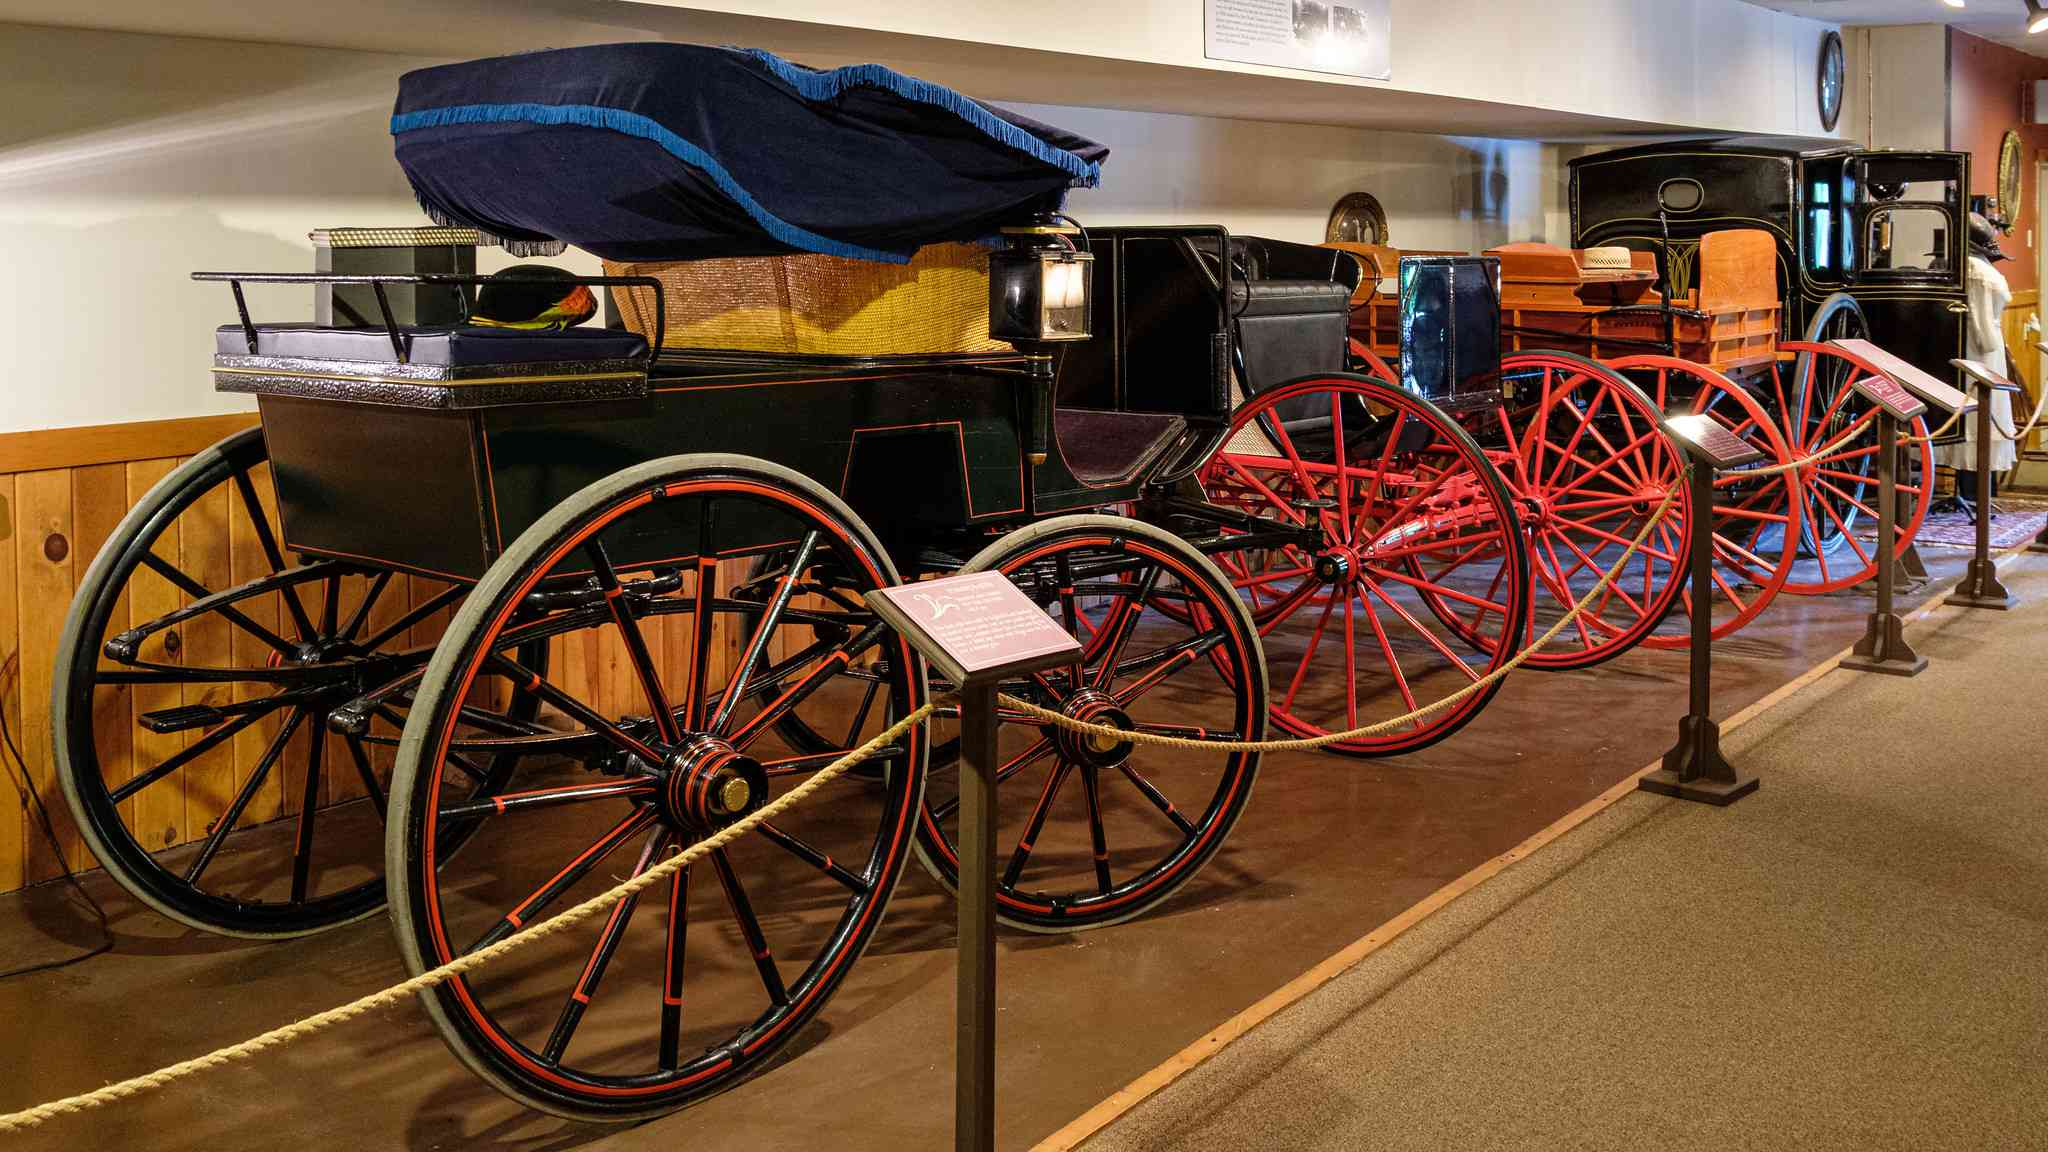 Cumberland to Frostburg Railroad Thrashers Carriage Museum